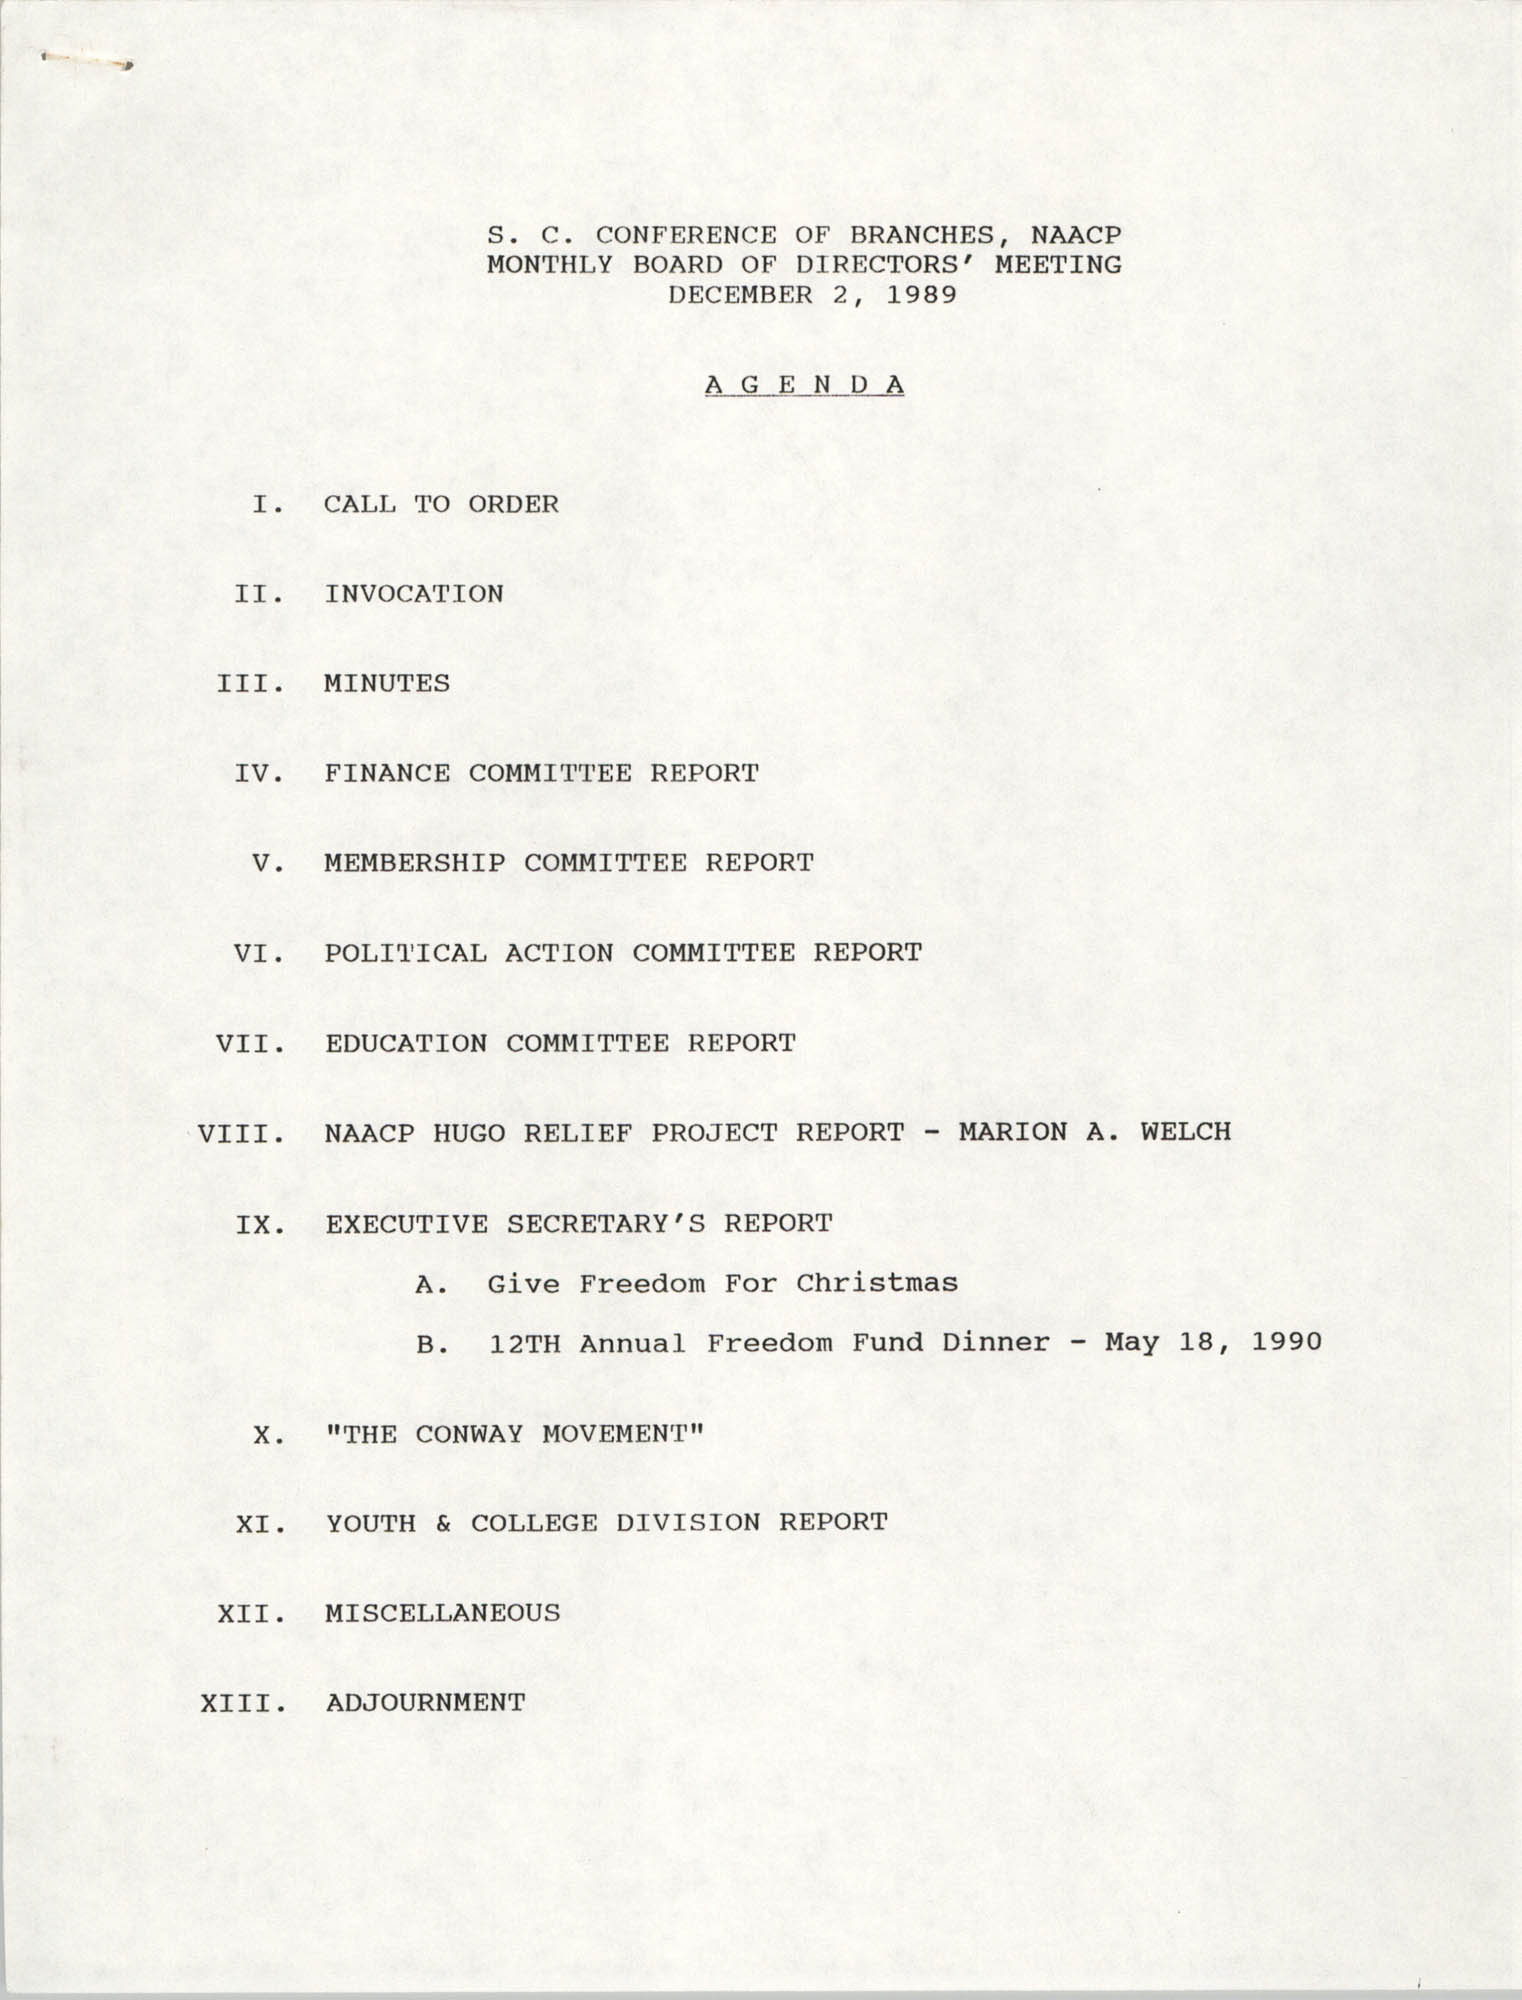 Agenda, South Carolina Conference of Branches of the NAACP, December 2, 1989